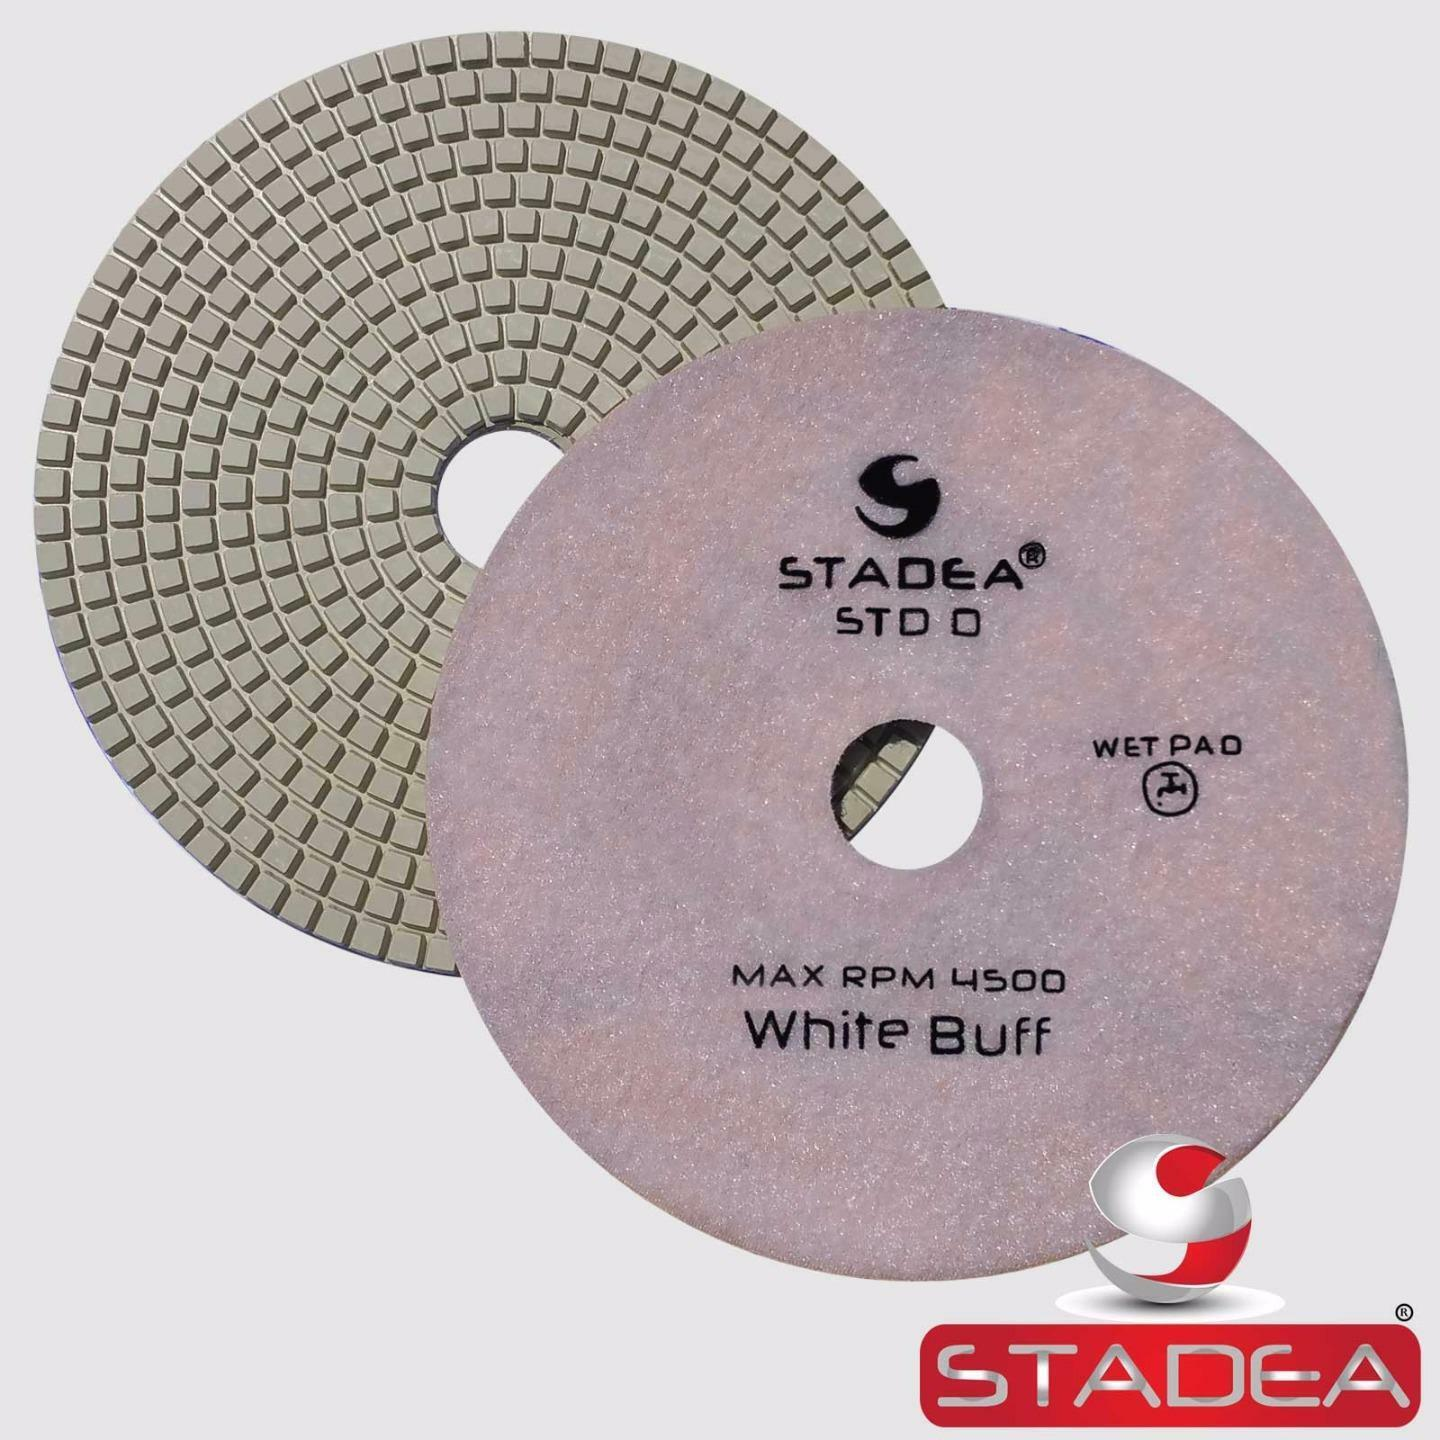 Details About Stadea Diamond Polishing Pads 7 Inch For Marble Concrete Stones Terrazzo Granite